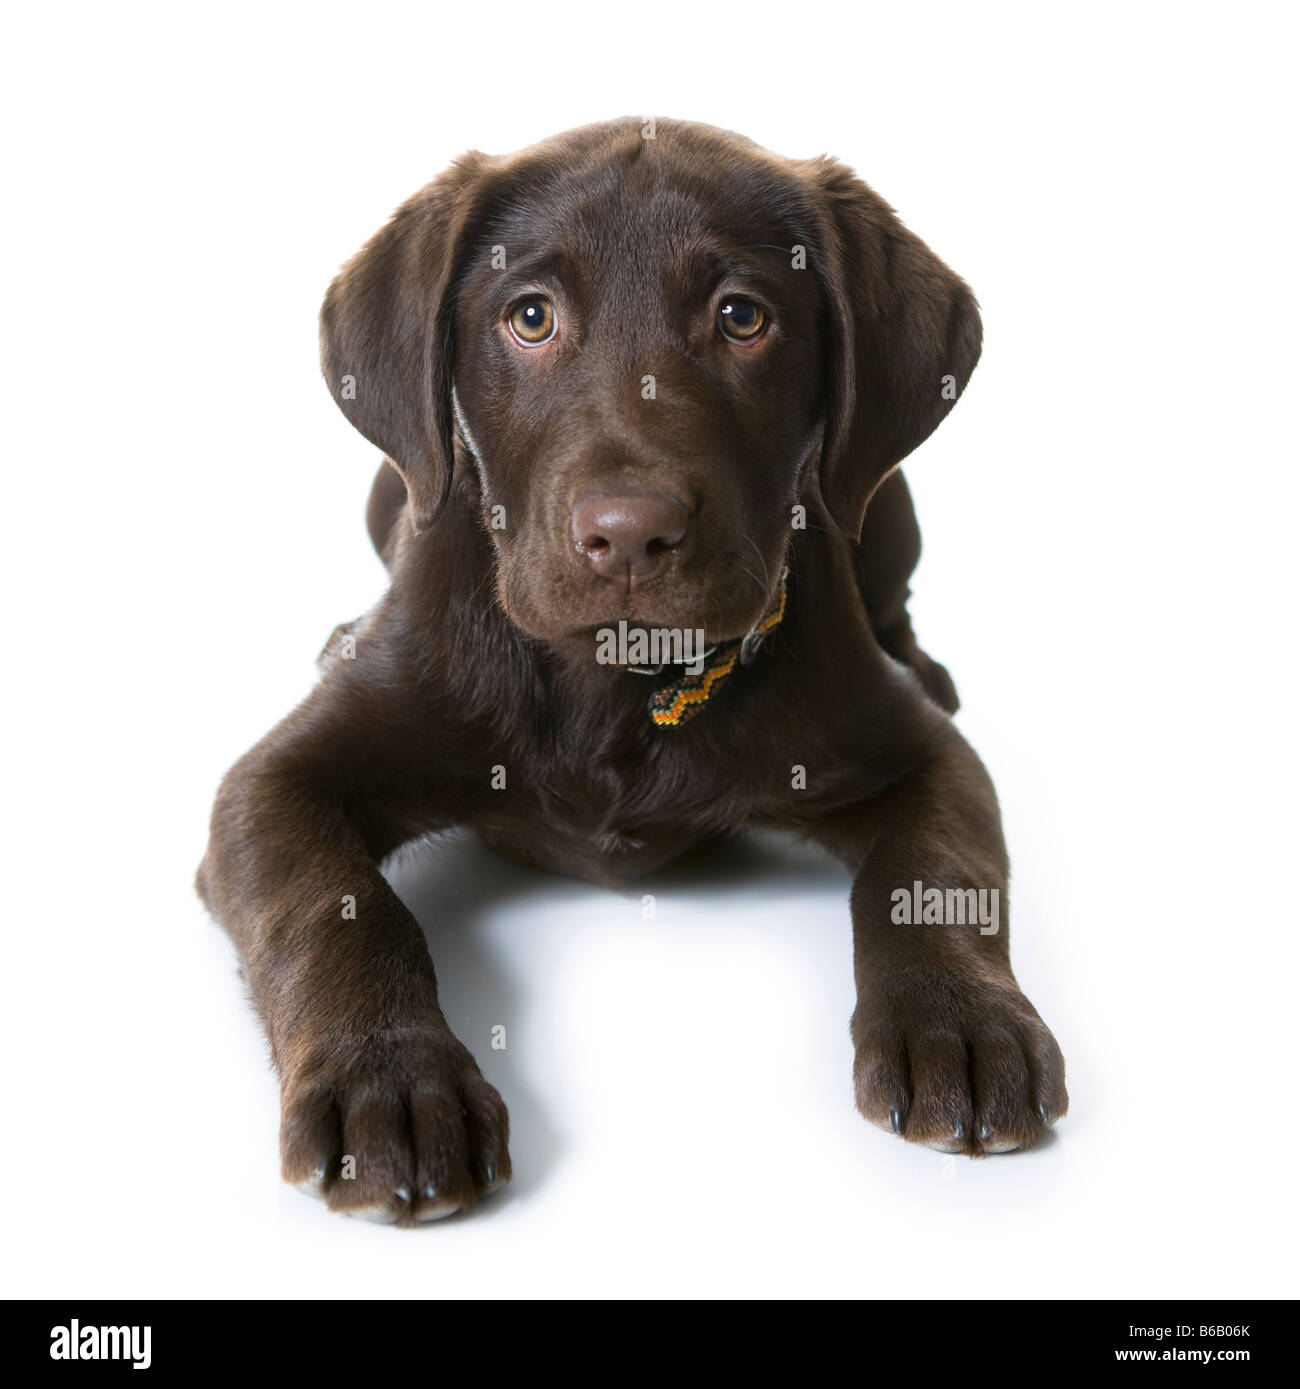 doggy - Stock Image